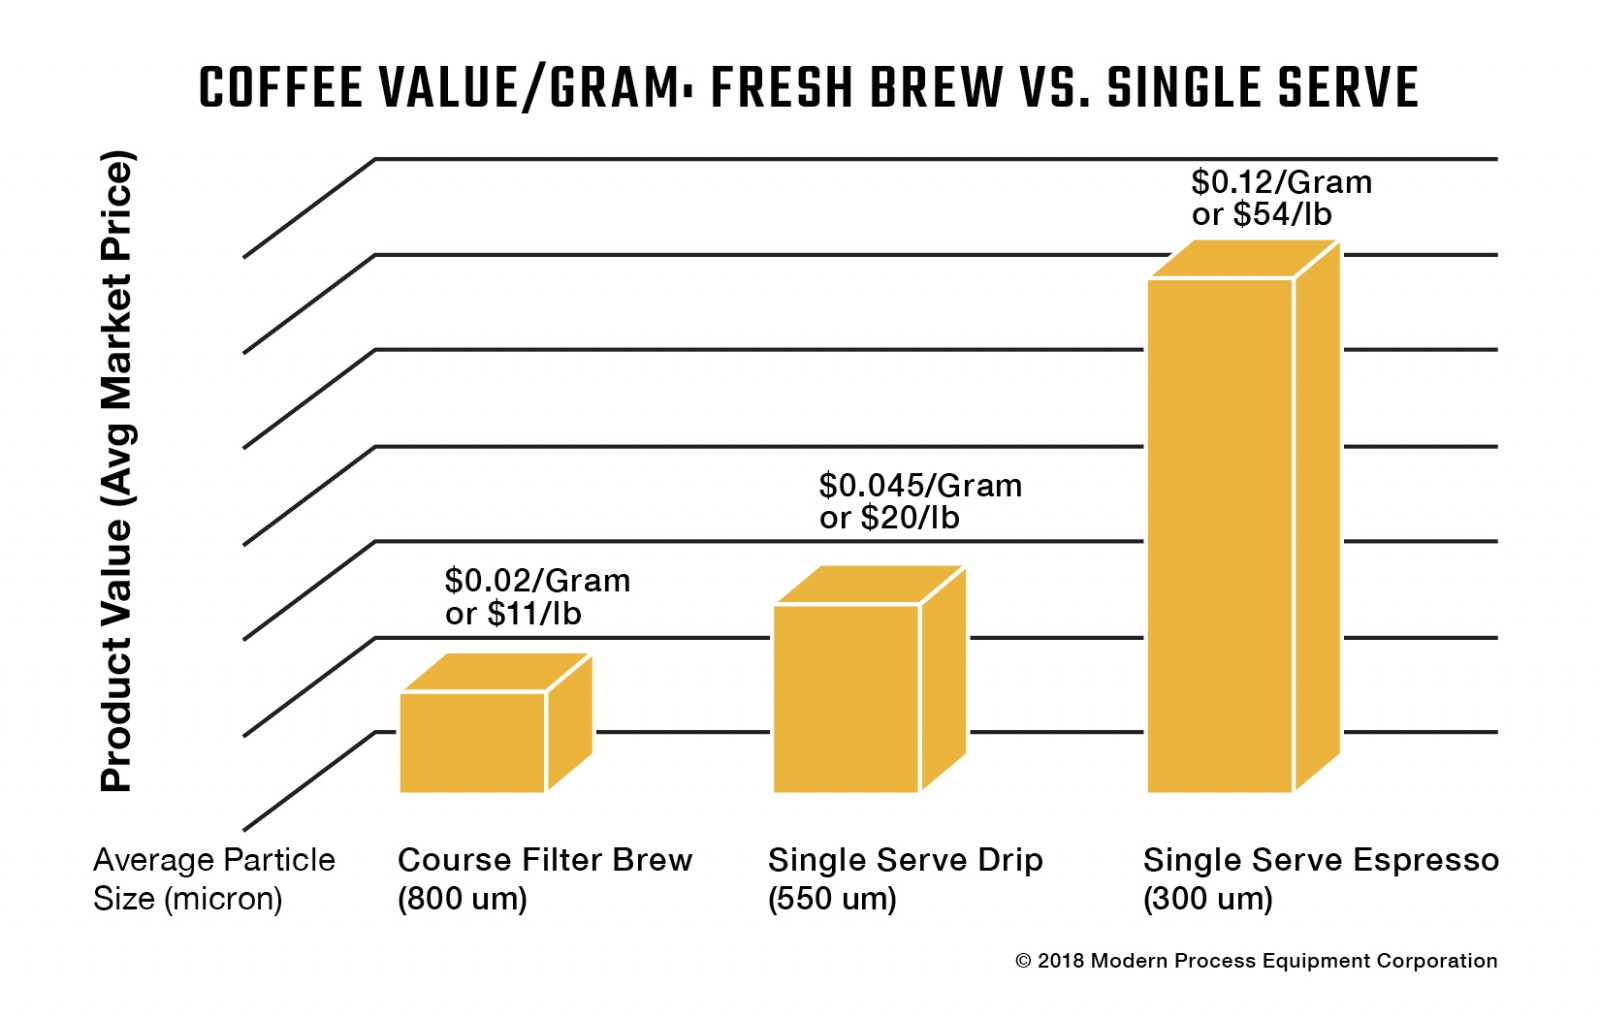 Graph of Price of Coffee to Gram